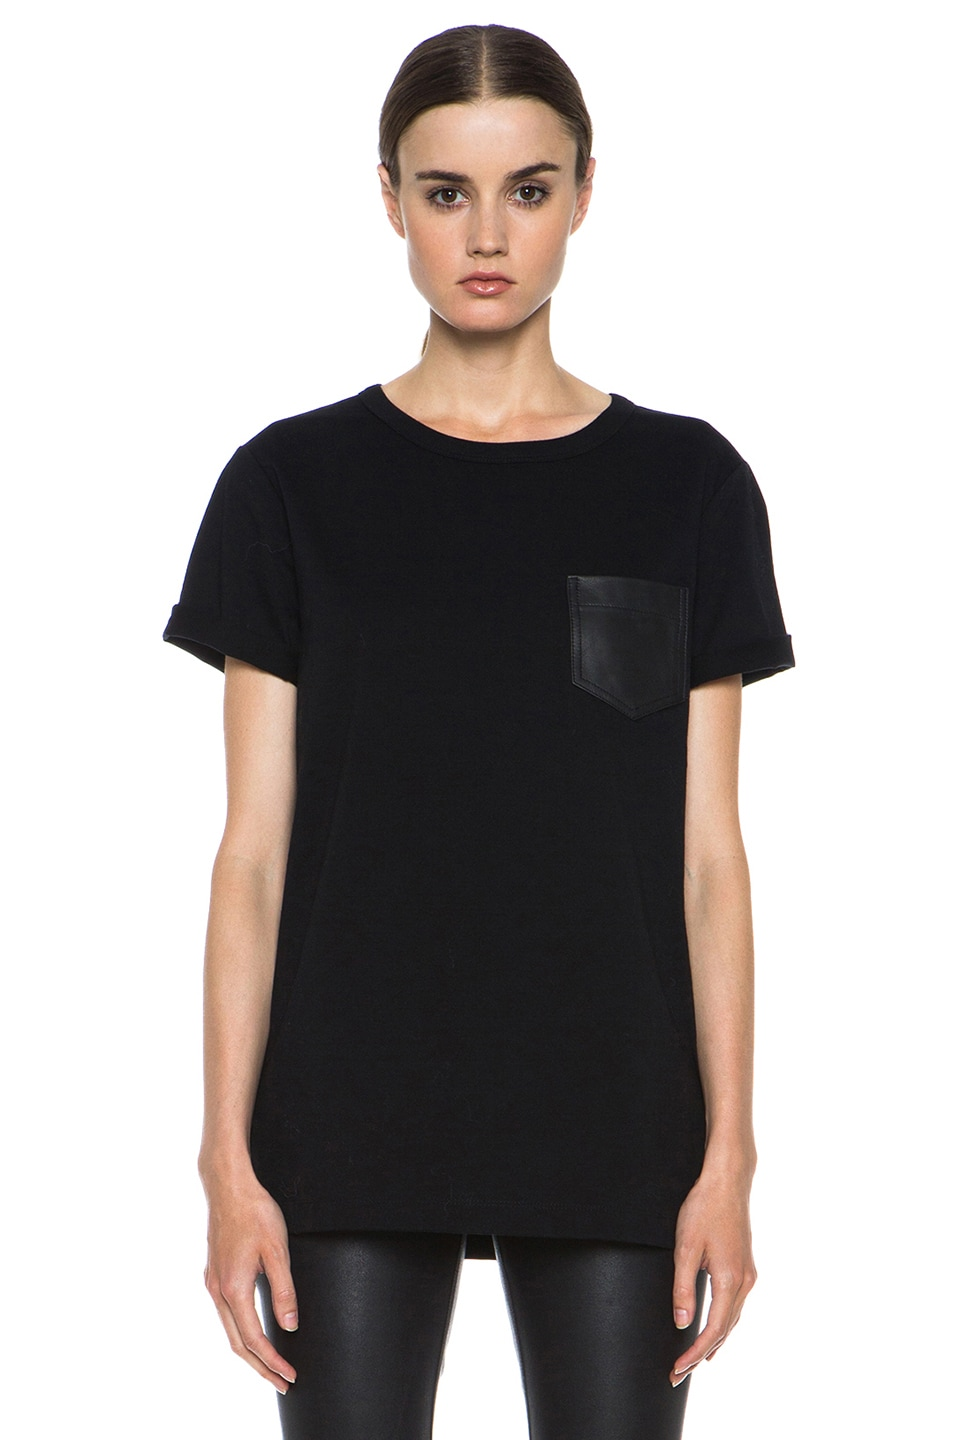 Image 1 of T by Alexander Wang Supima Jersey Tee with Leather Pocket in Black